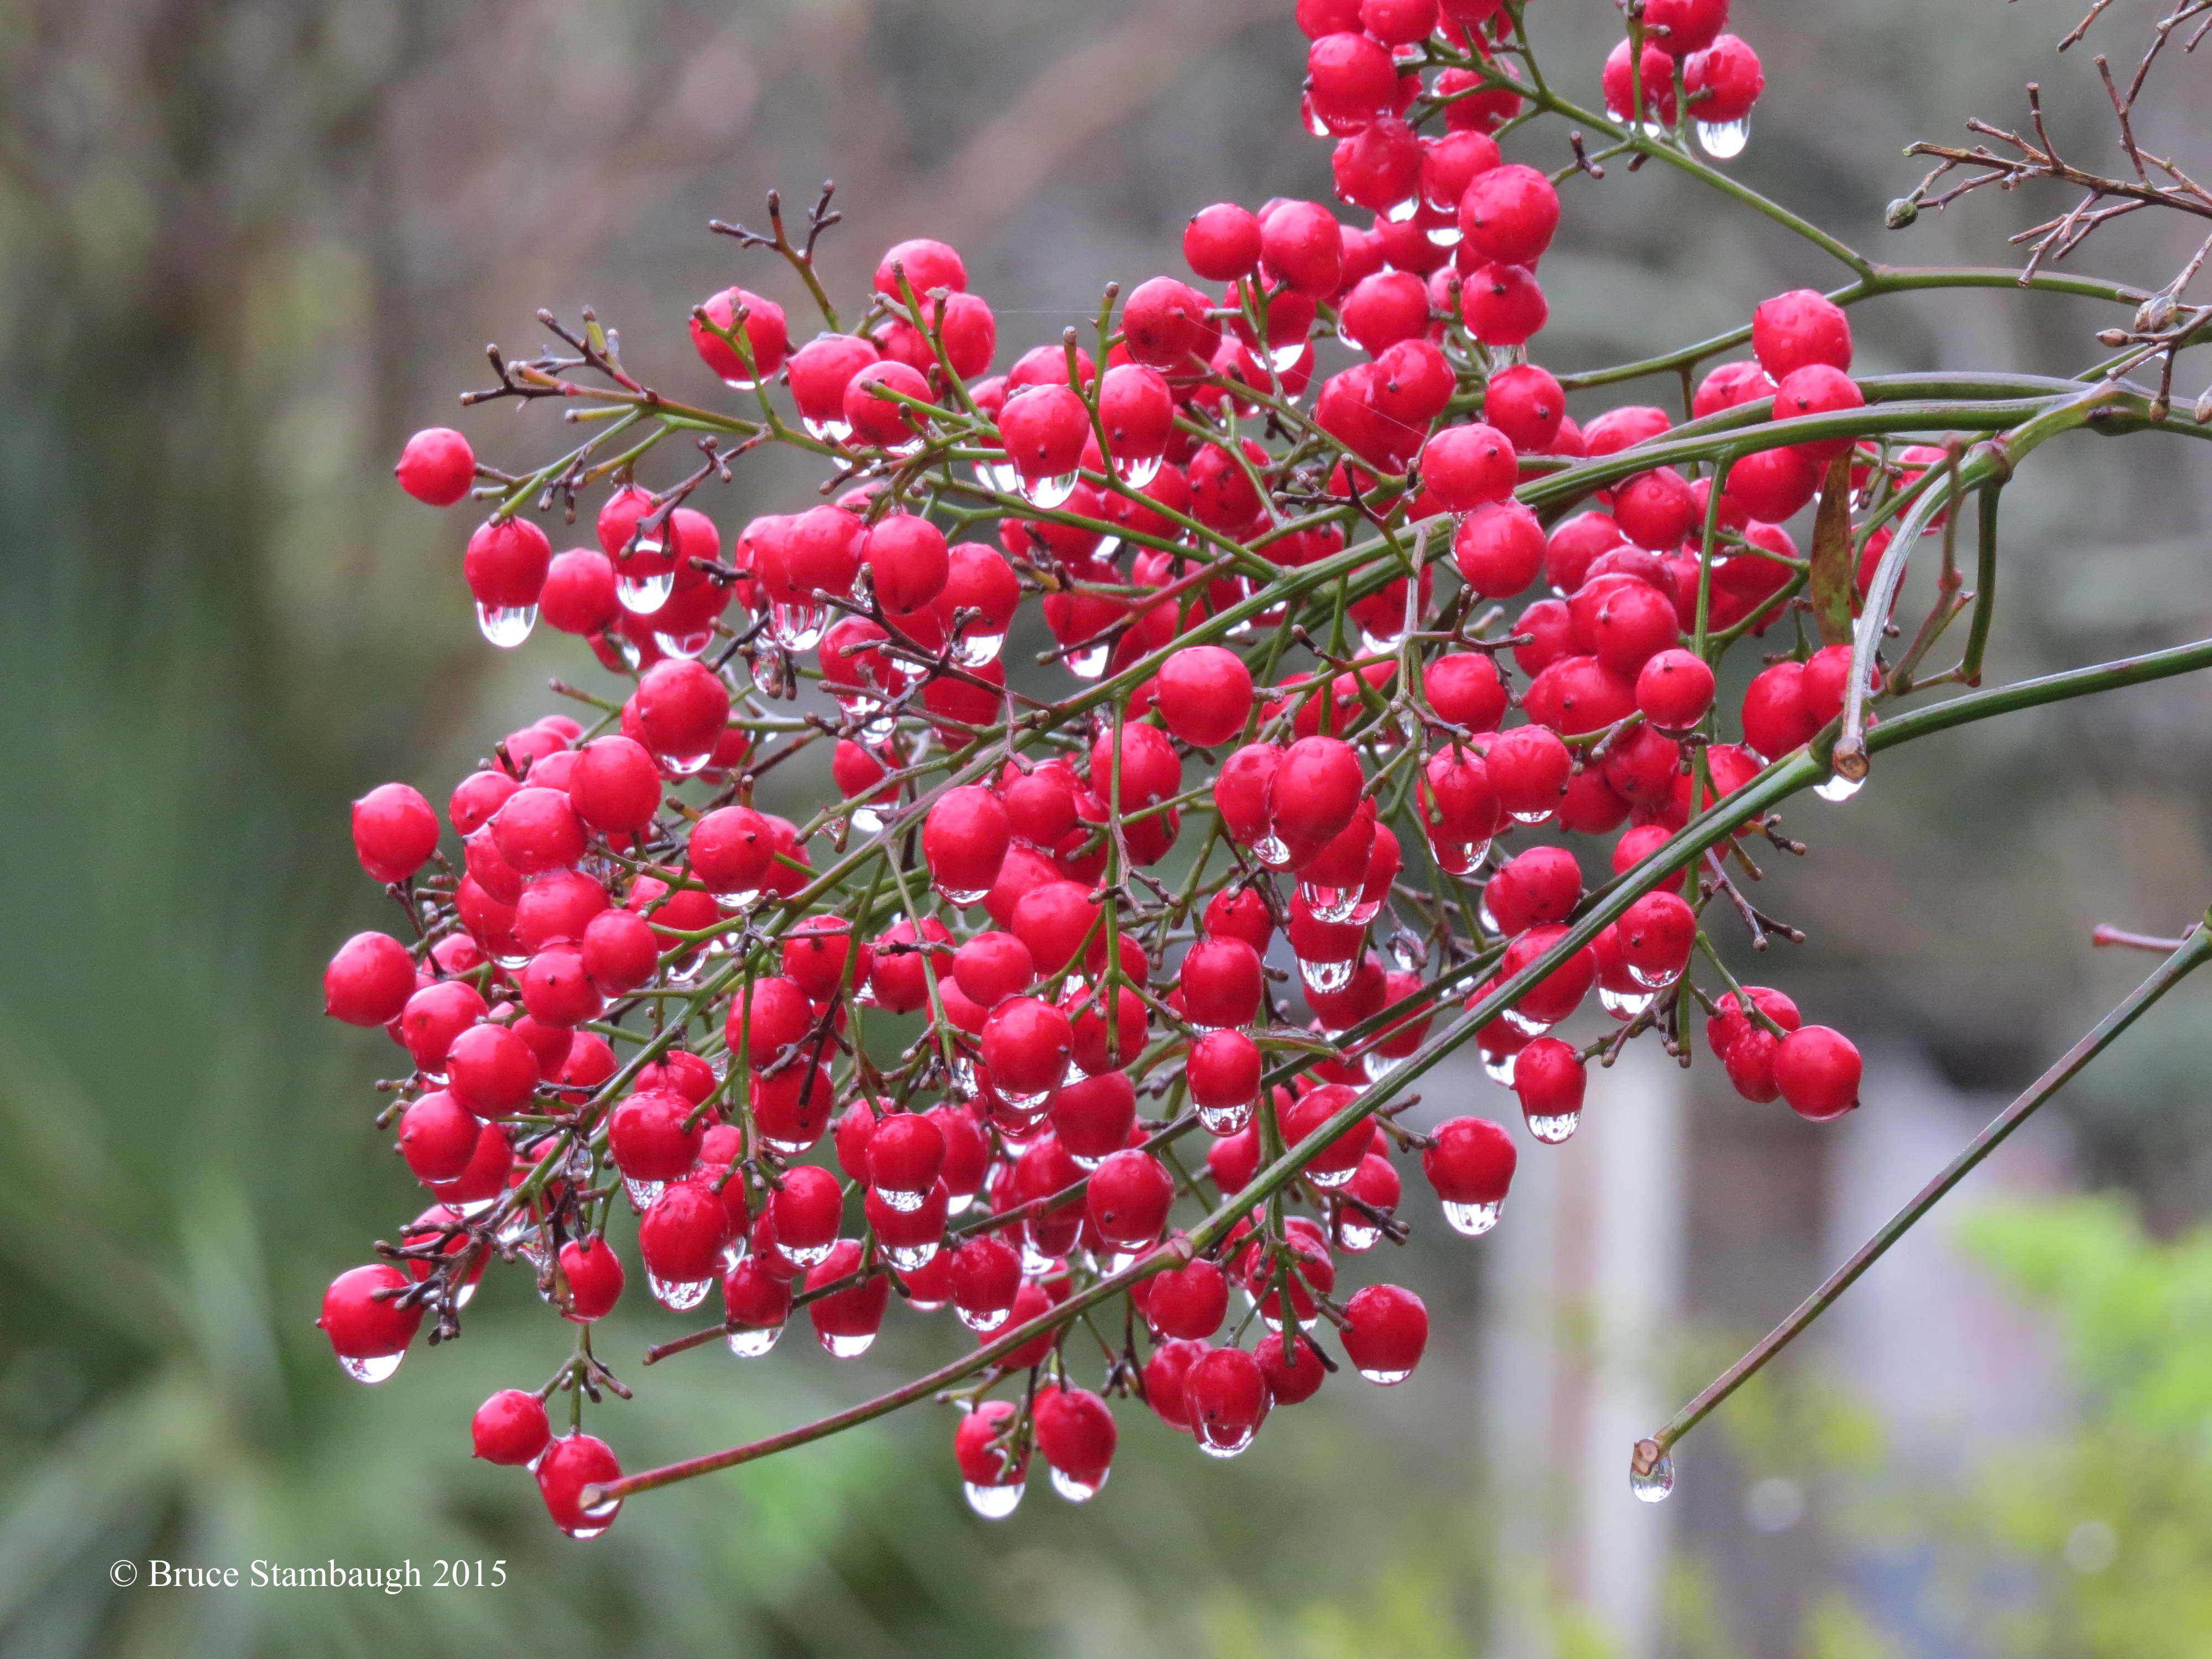 raindrops on berries, color contrasts